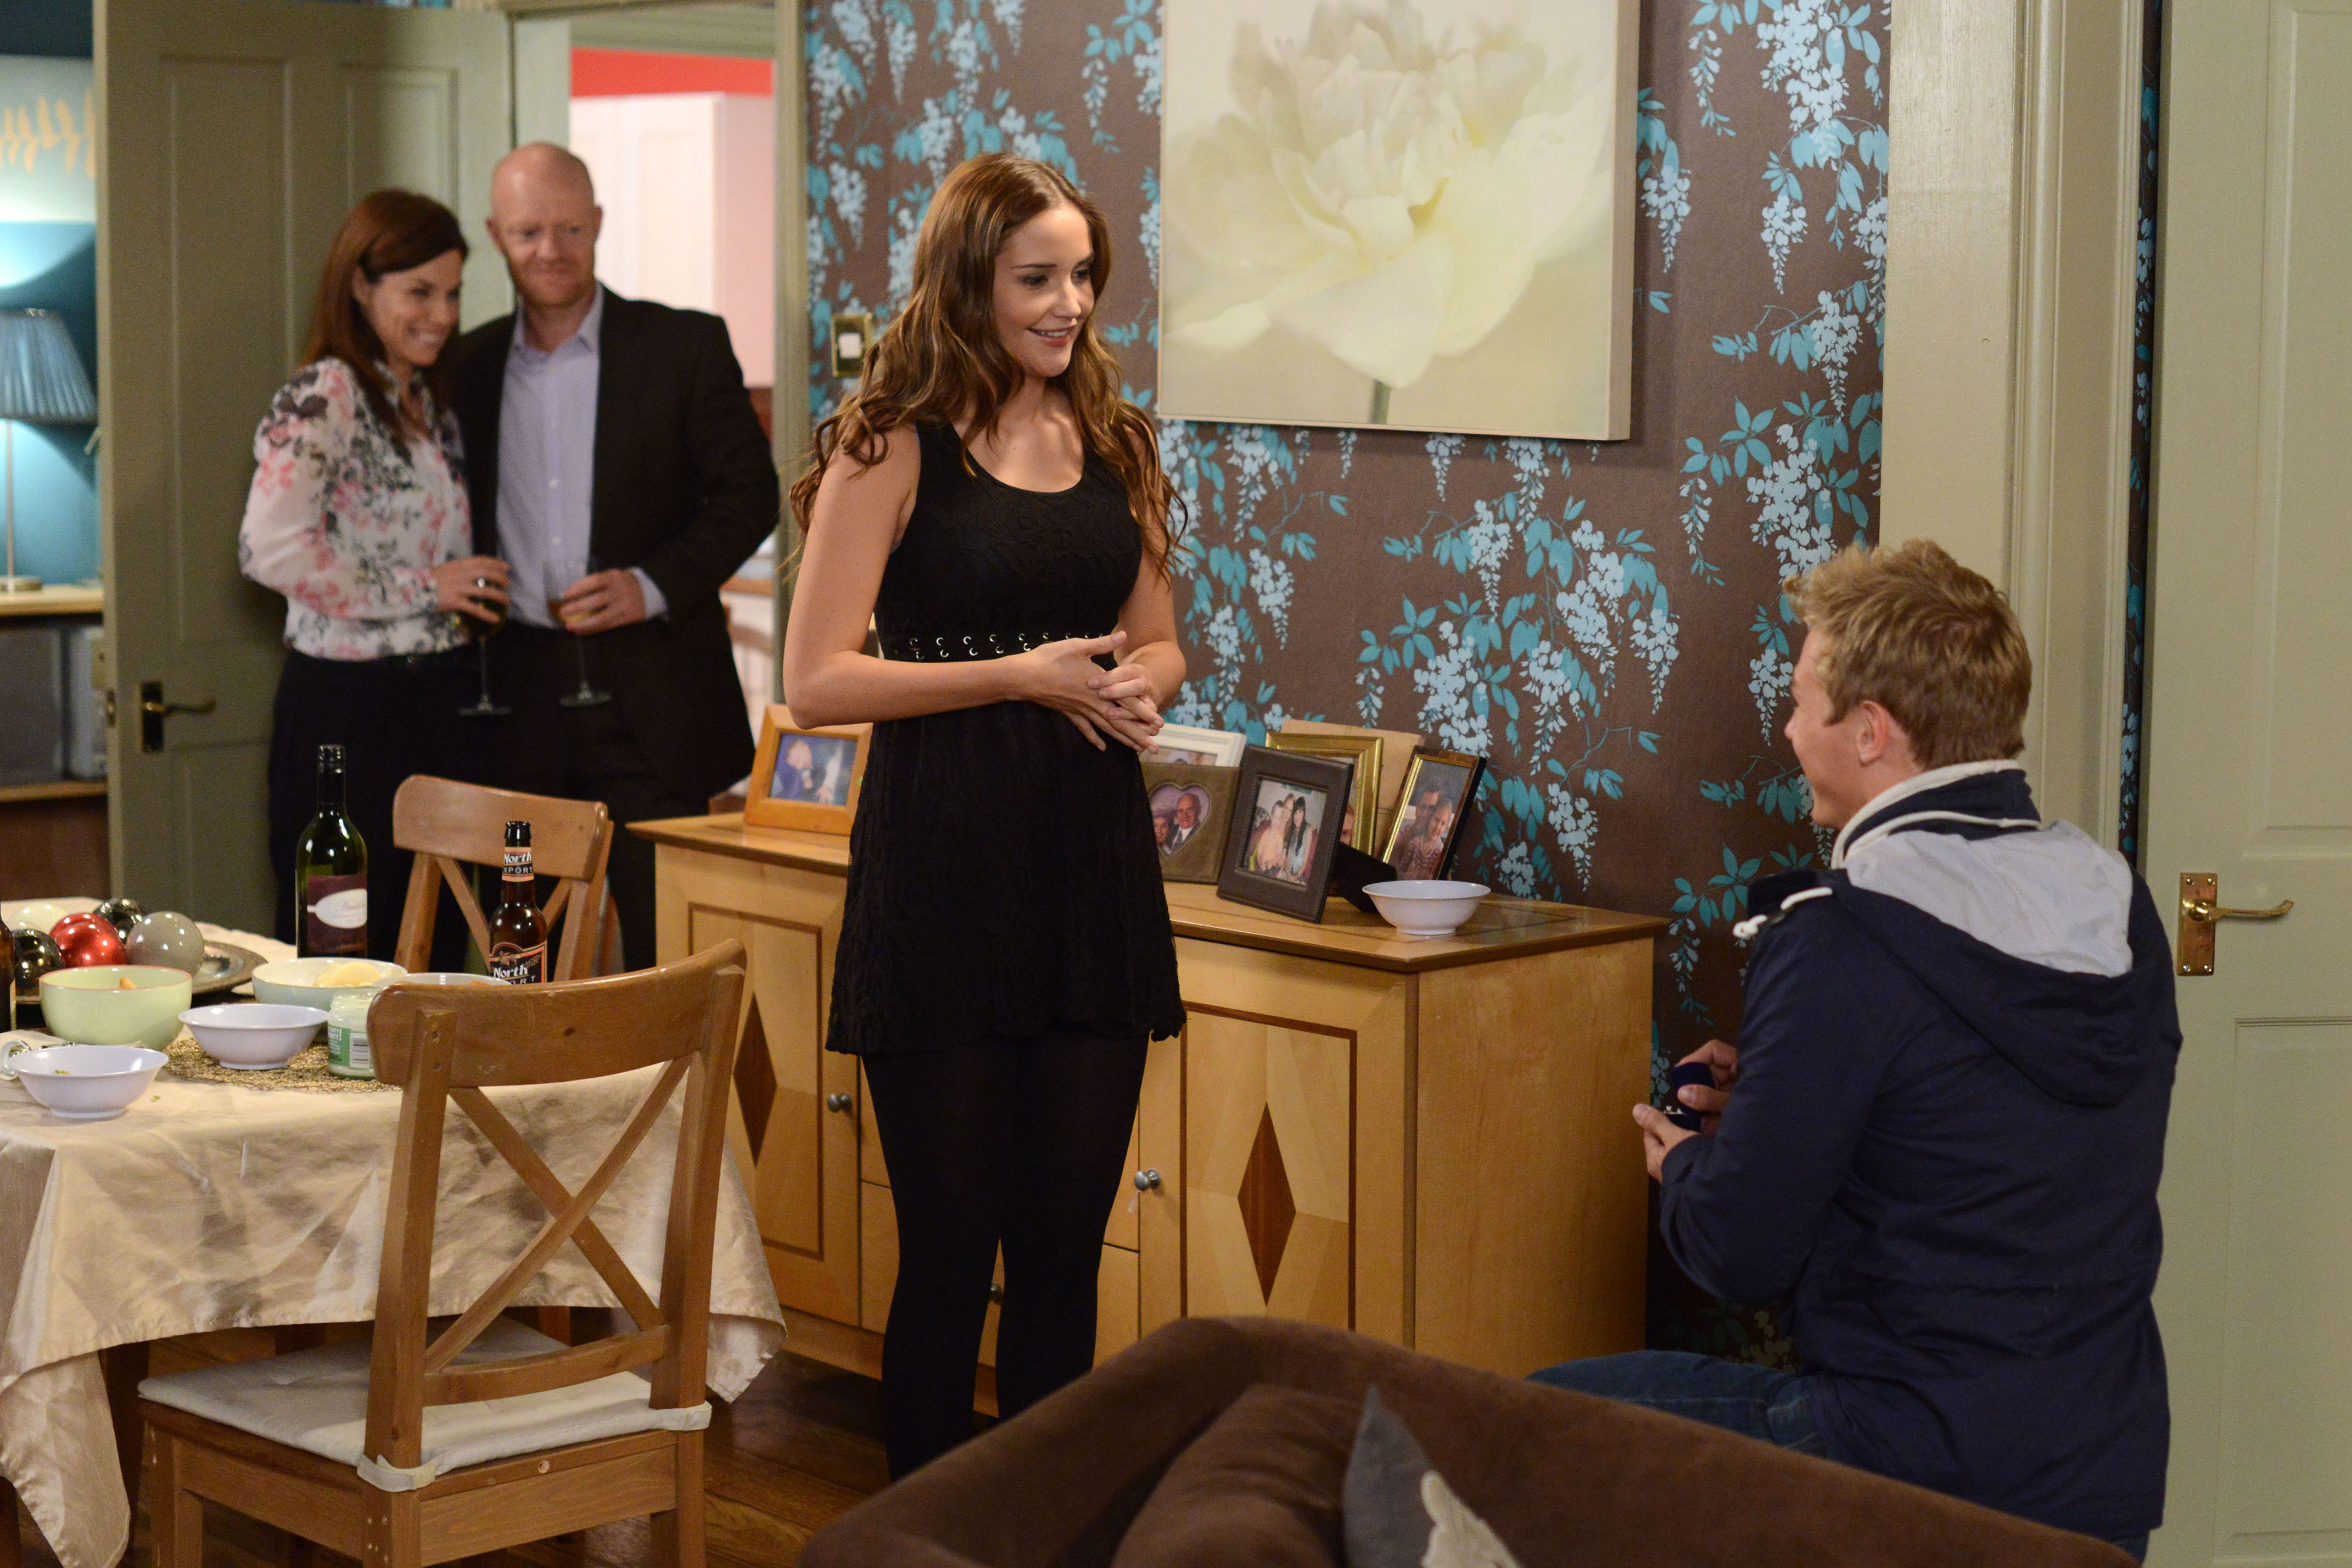 EastEnders spoiler: Peter Beale returns to Walford and has a shocking proposal for Lauren Branning